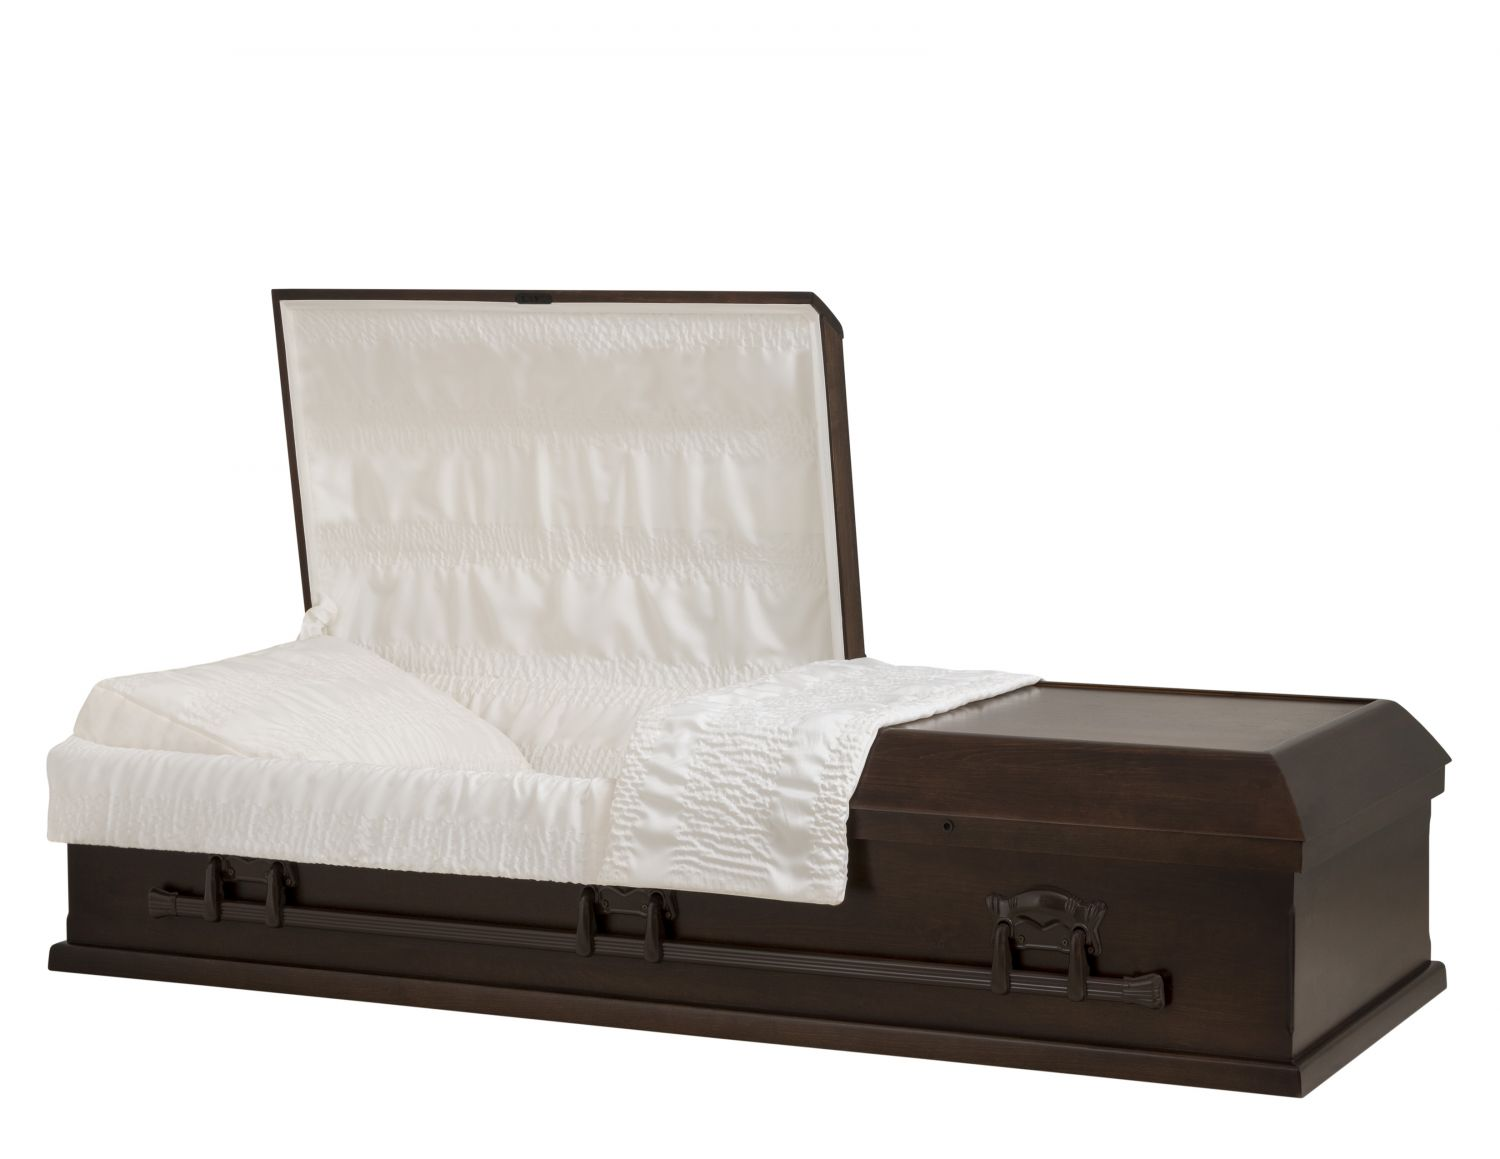 Concept Caskets 10L15-00007-N POPLAR CASKET OPEN GRAIN CREPE DARK  LOCATION BED NO 909   3 X 0 BRONZE